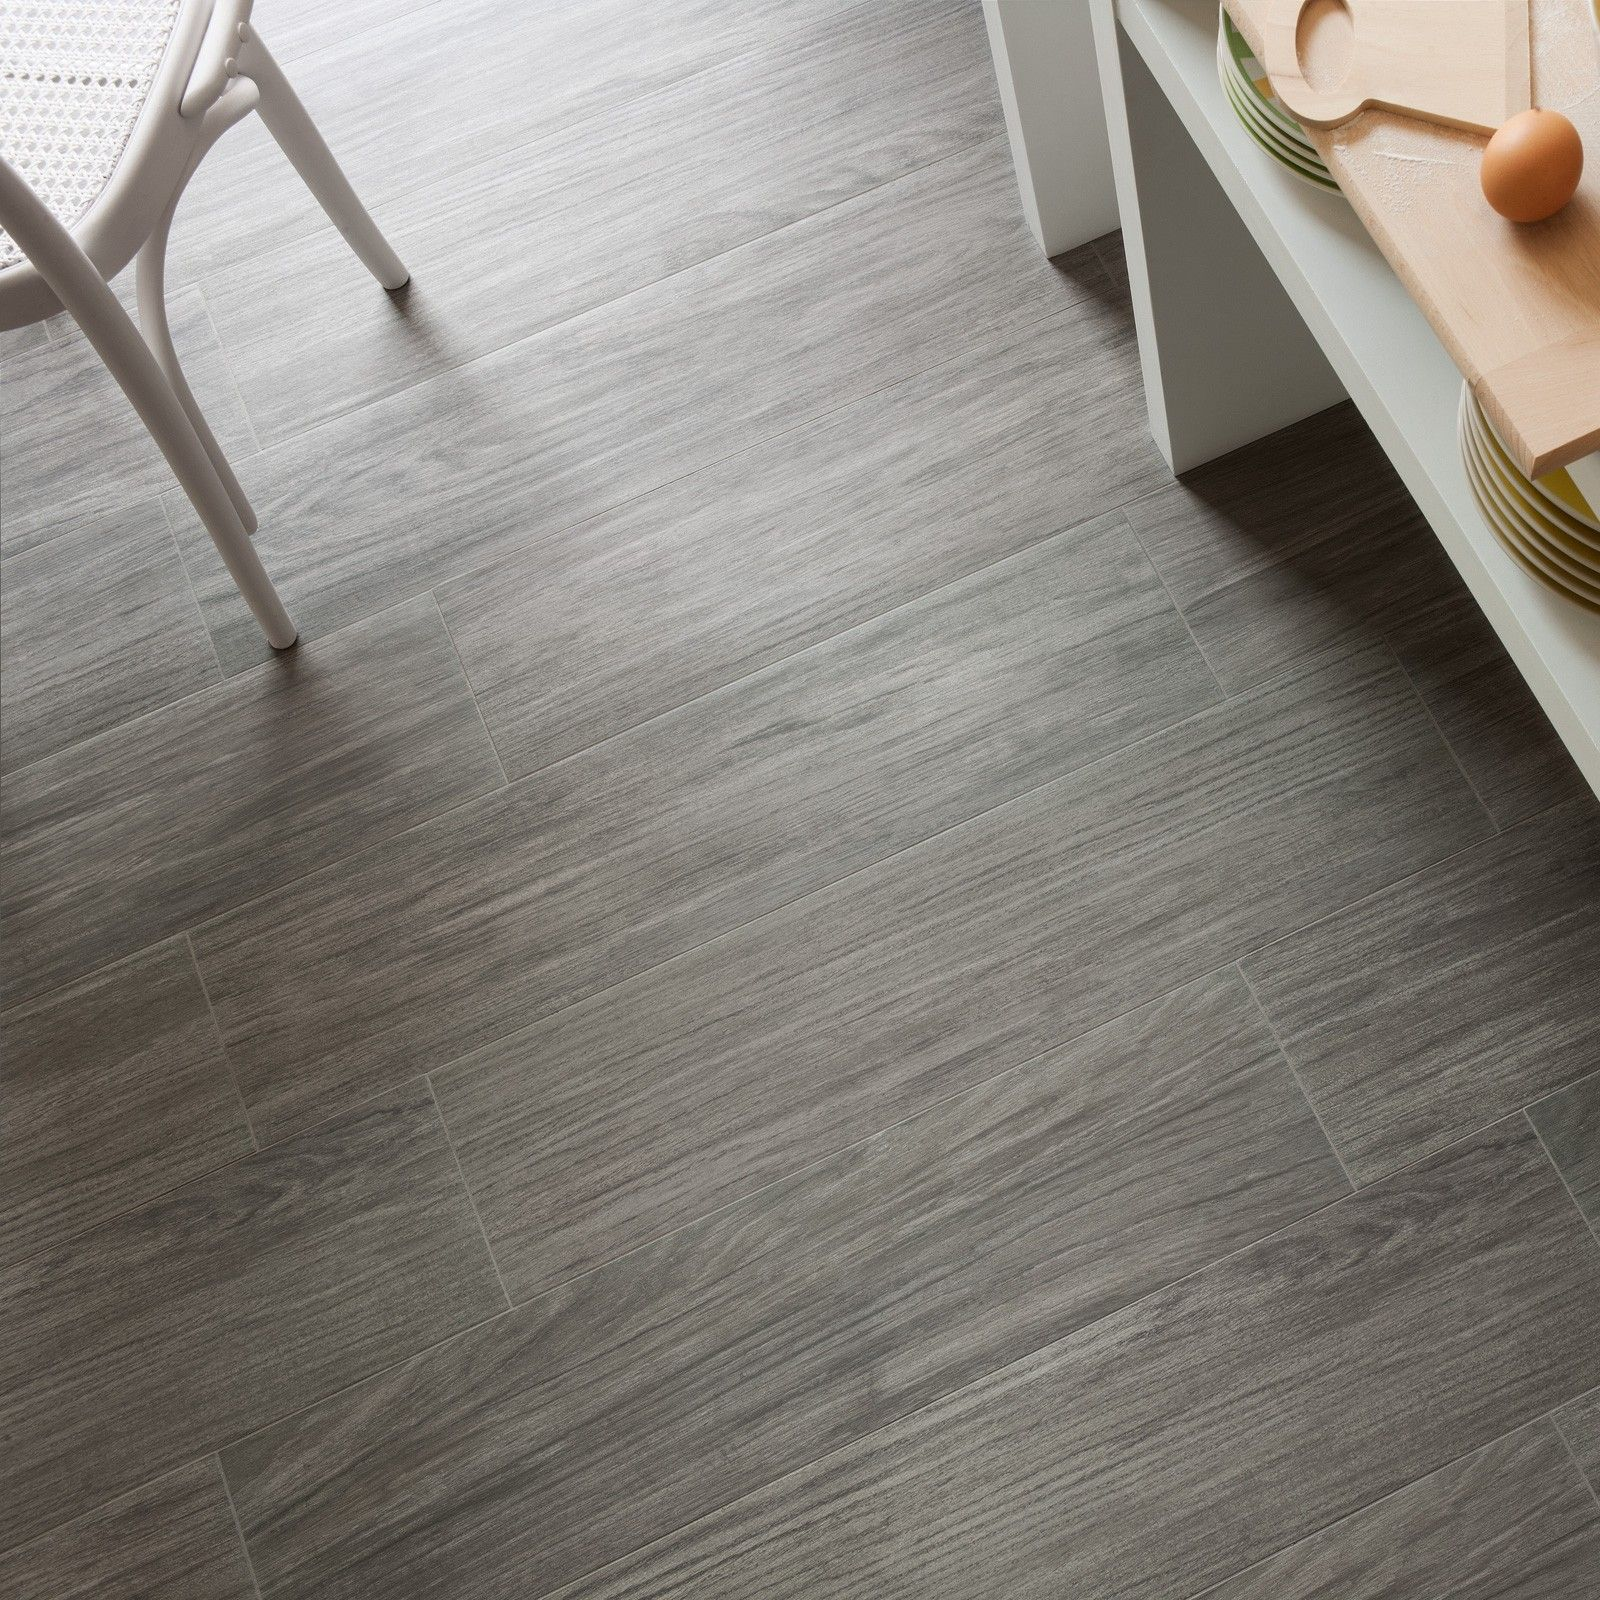 Wood porcelain tile flooring google search home ideas kitchen floor wood effect tiling dailygadgetfo Image collections